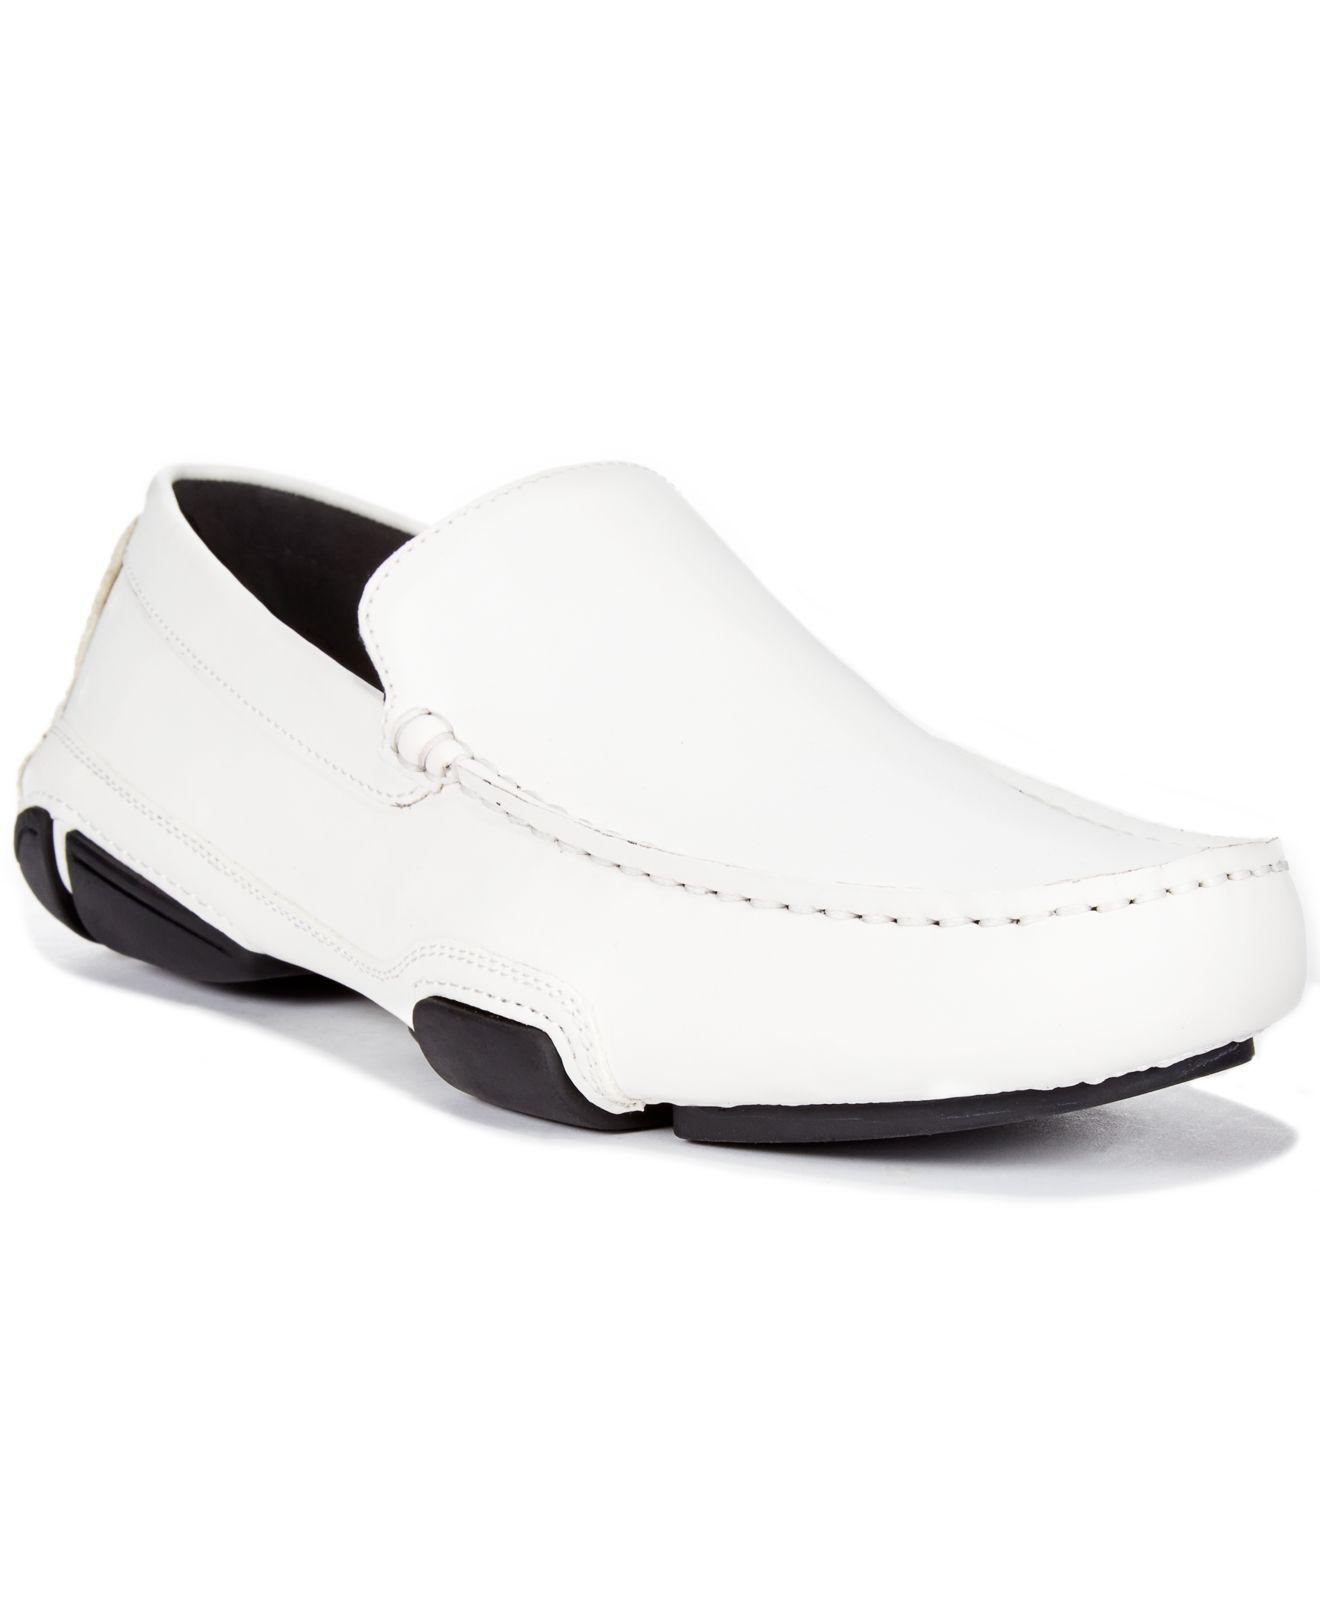 Kenneth Cole Reaction White Shoes